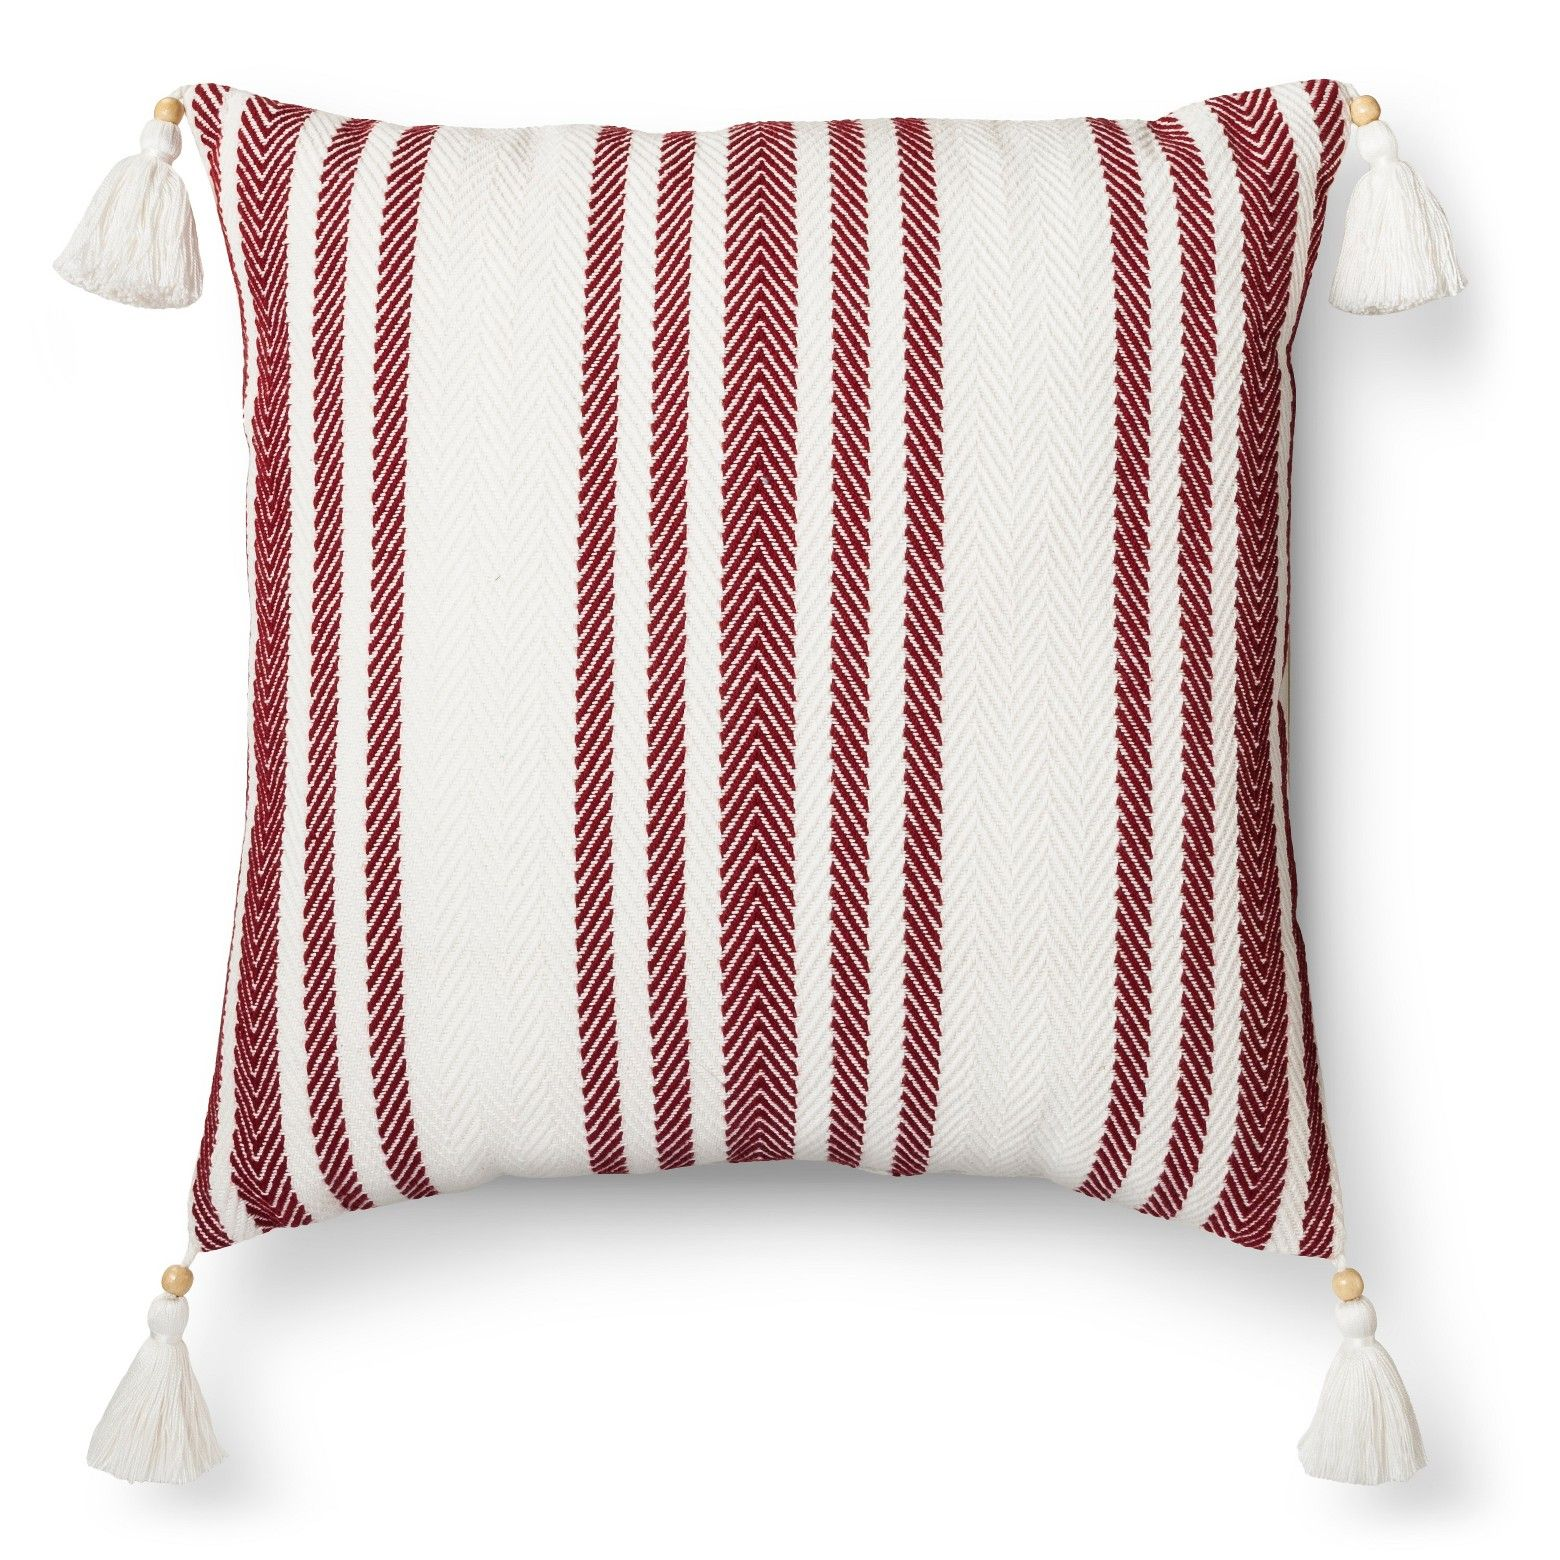 woven the arrangement up this with and seating target striped accent pin throw pillows plump threshold stripe a pillow